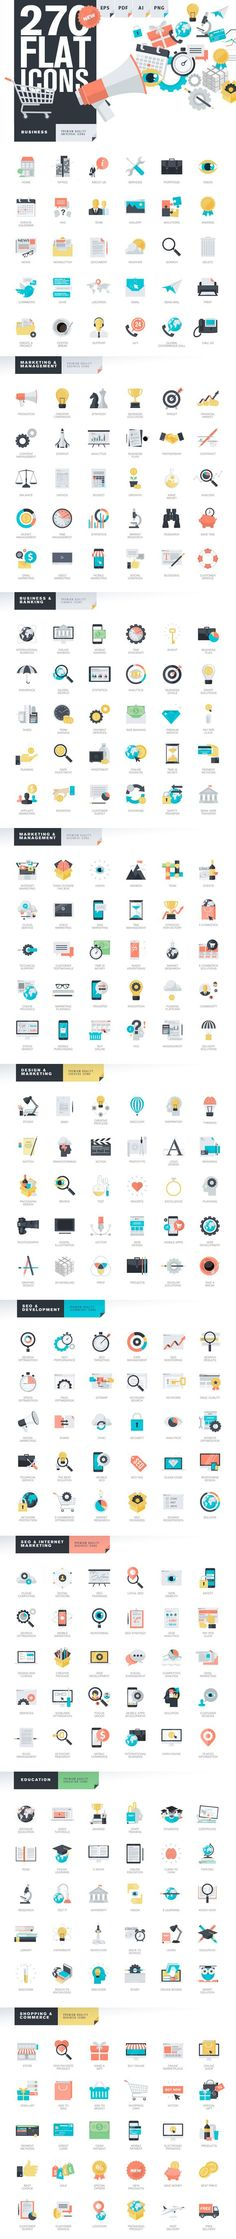 Modern Flat Design Style Icons by PureSolution on Creative Market: